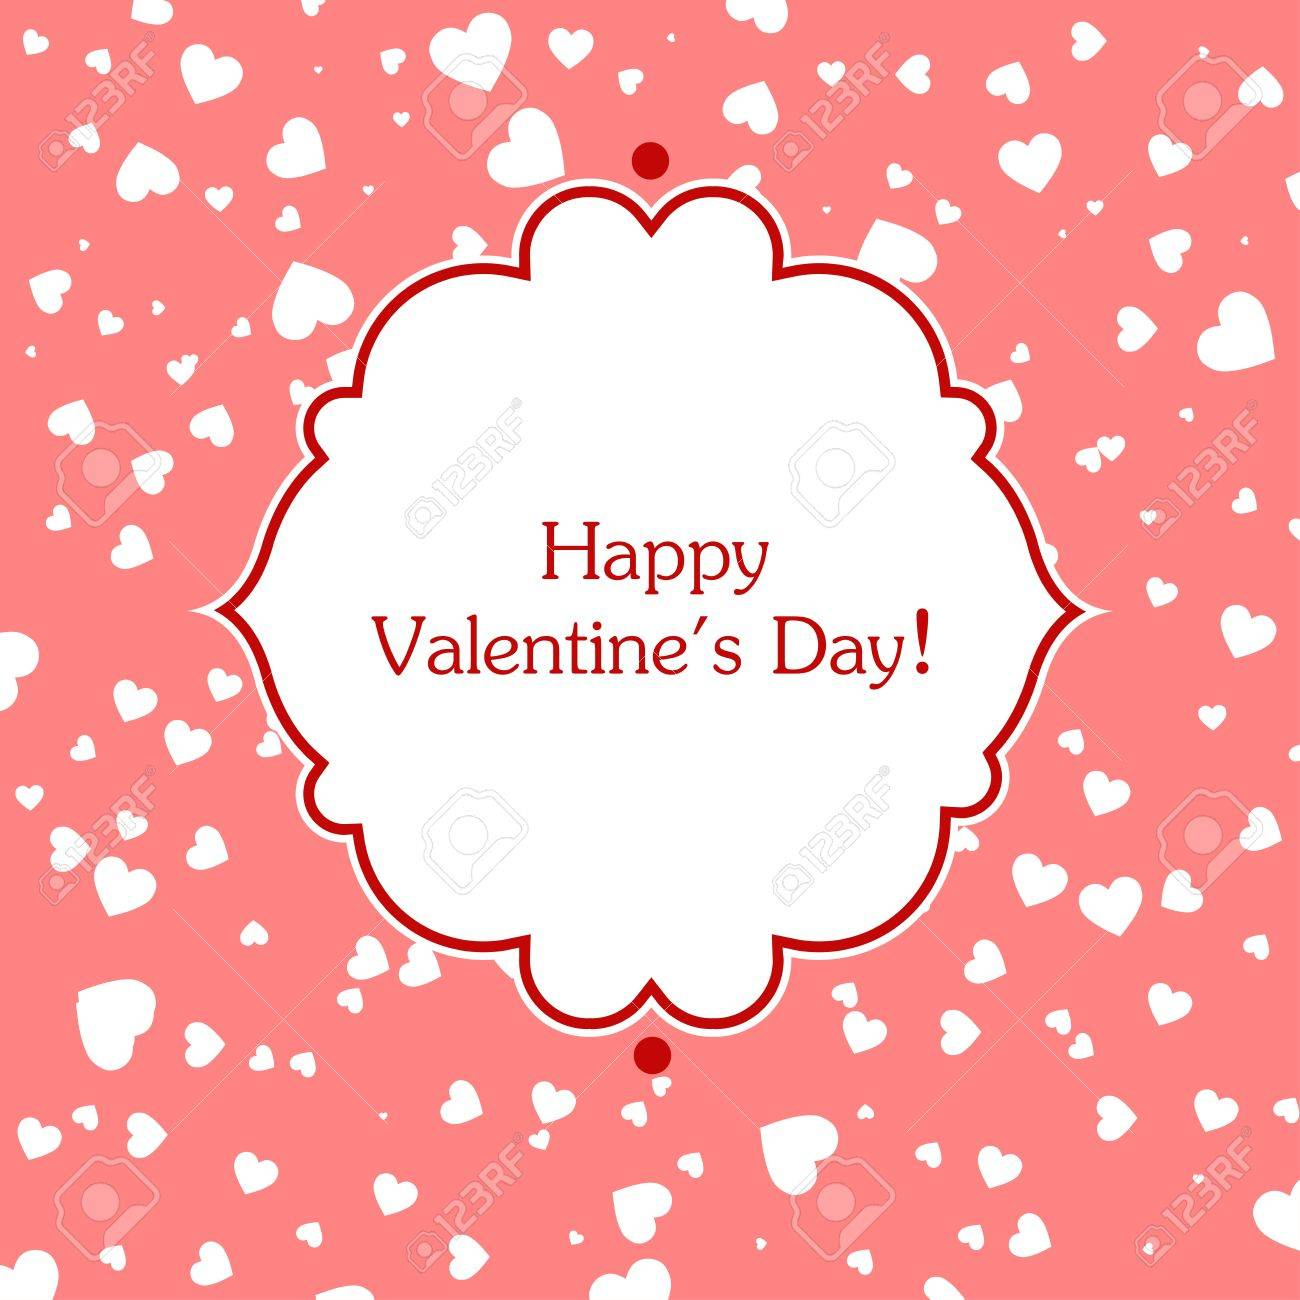 Valentines day greeting card. Vector illustration. Stock Vector - 17793070